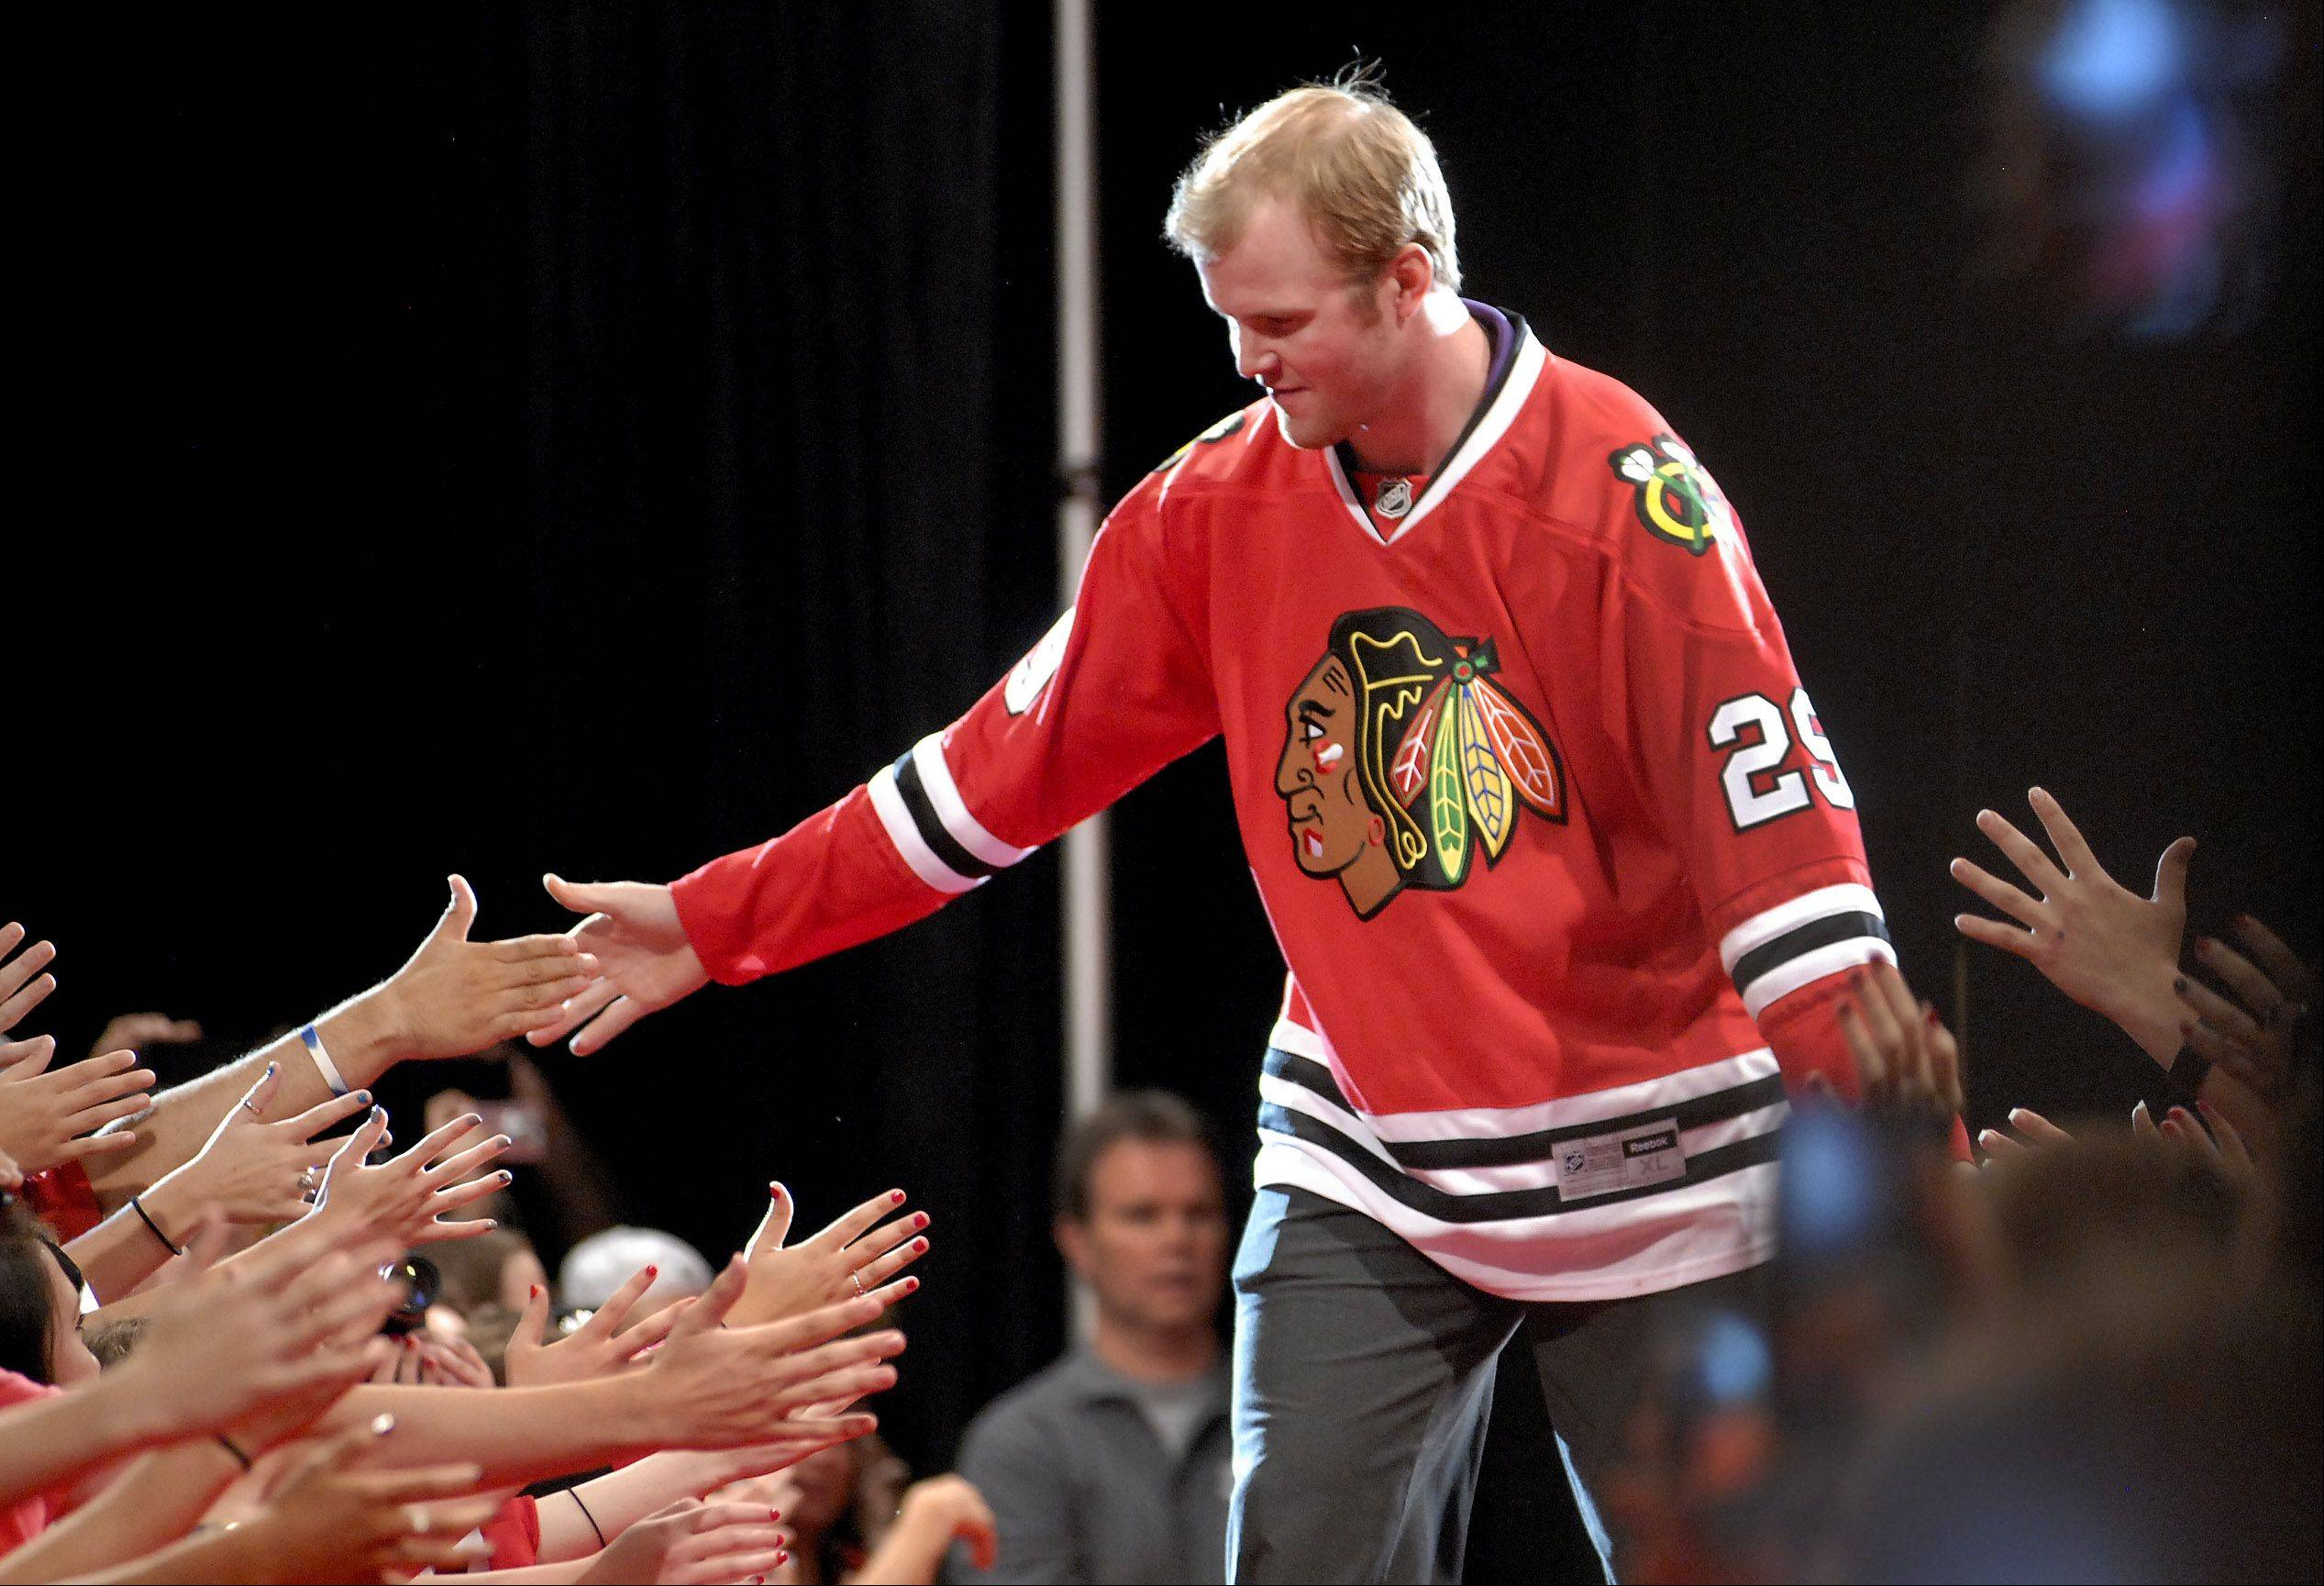 Bob Chwedyk/bchwedyk@dailyherald.com Hawks fans loved what they say from Bryan Bickell in the playoffs. After years of coming to camp bidding for a third-line or fourth-line spot, Bickell will start with Jonathan Toews and Patrick Kane on the first line.